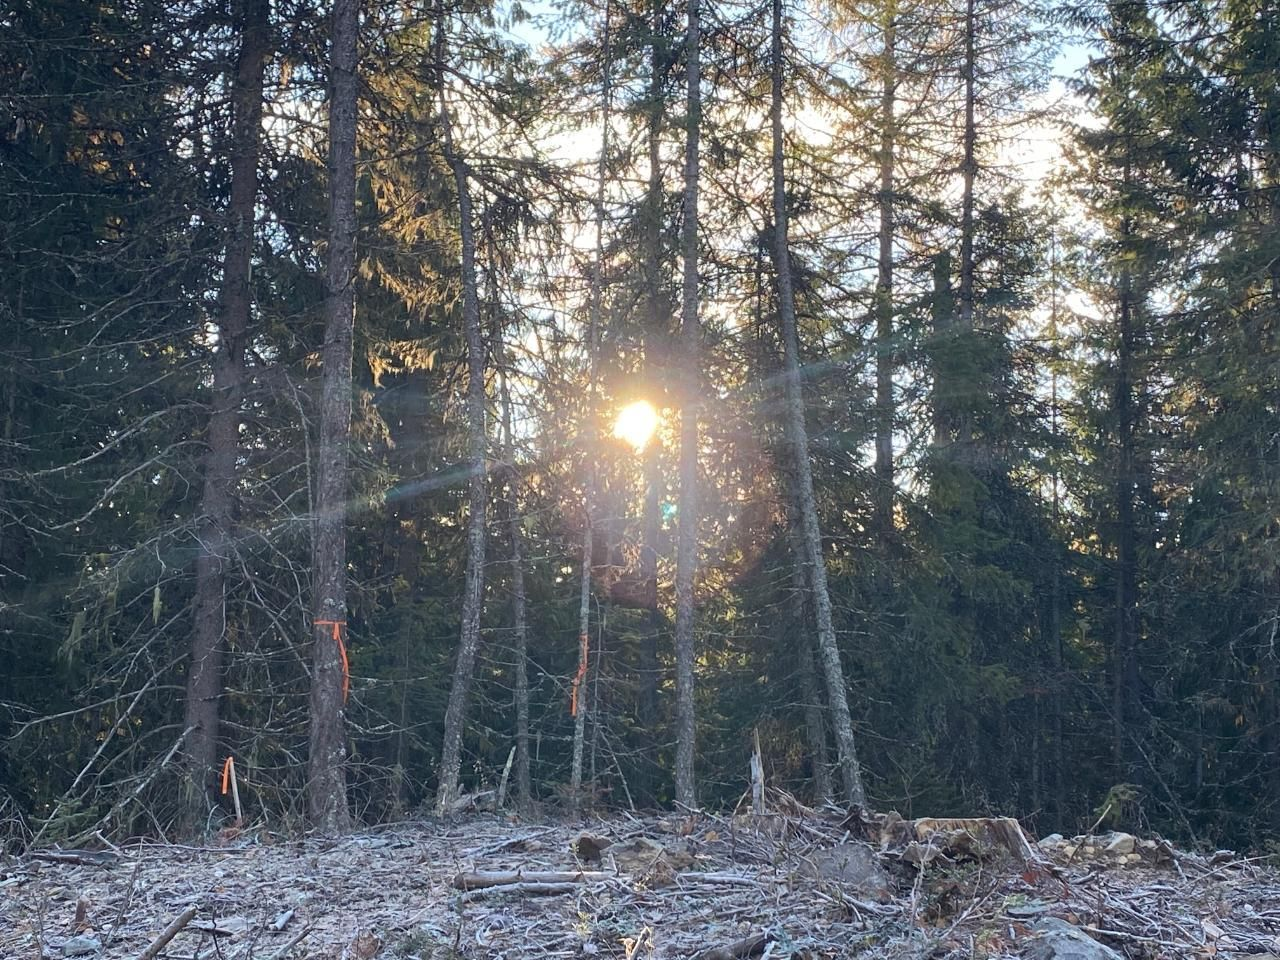 Main Photo: Lot 6 RED MOUNTAIN ROAD in Rossland: Vacant Land for sale : MLS®# 2455884